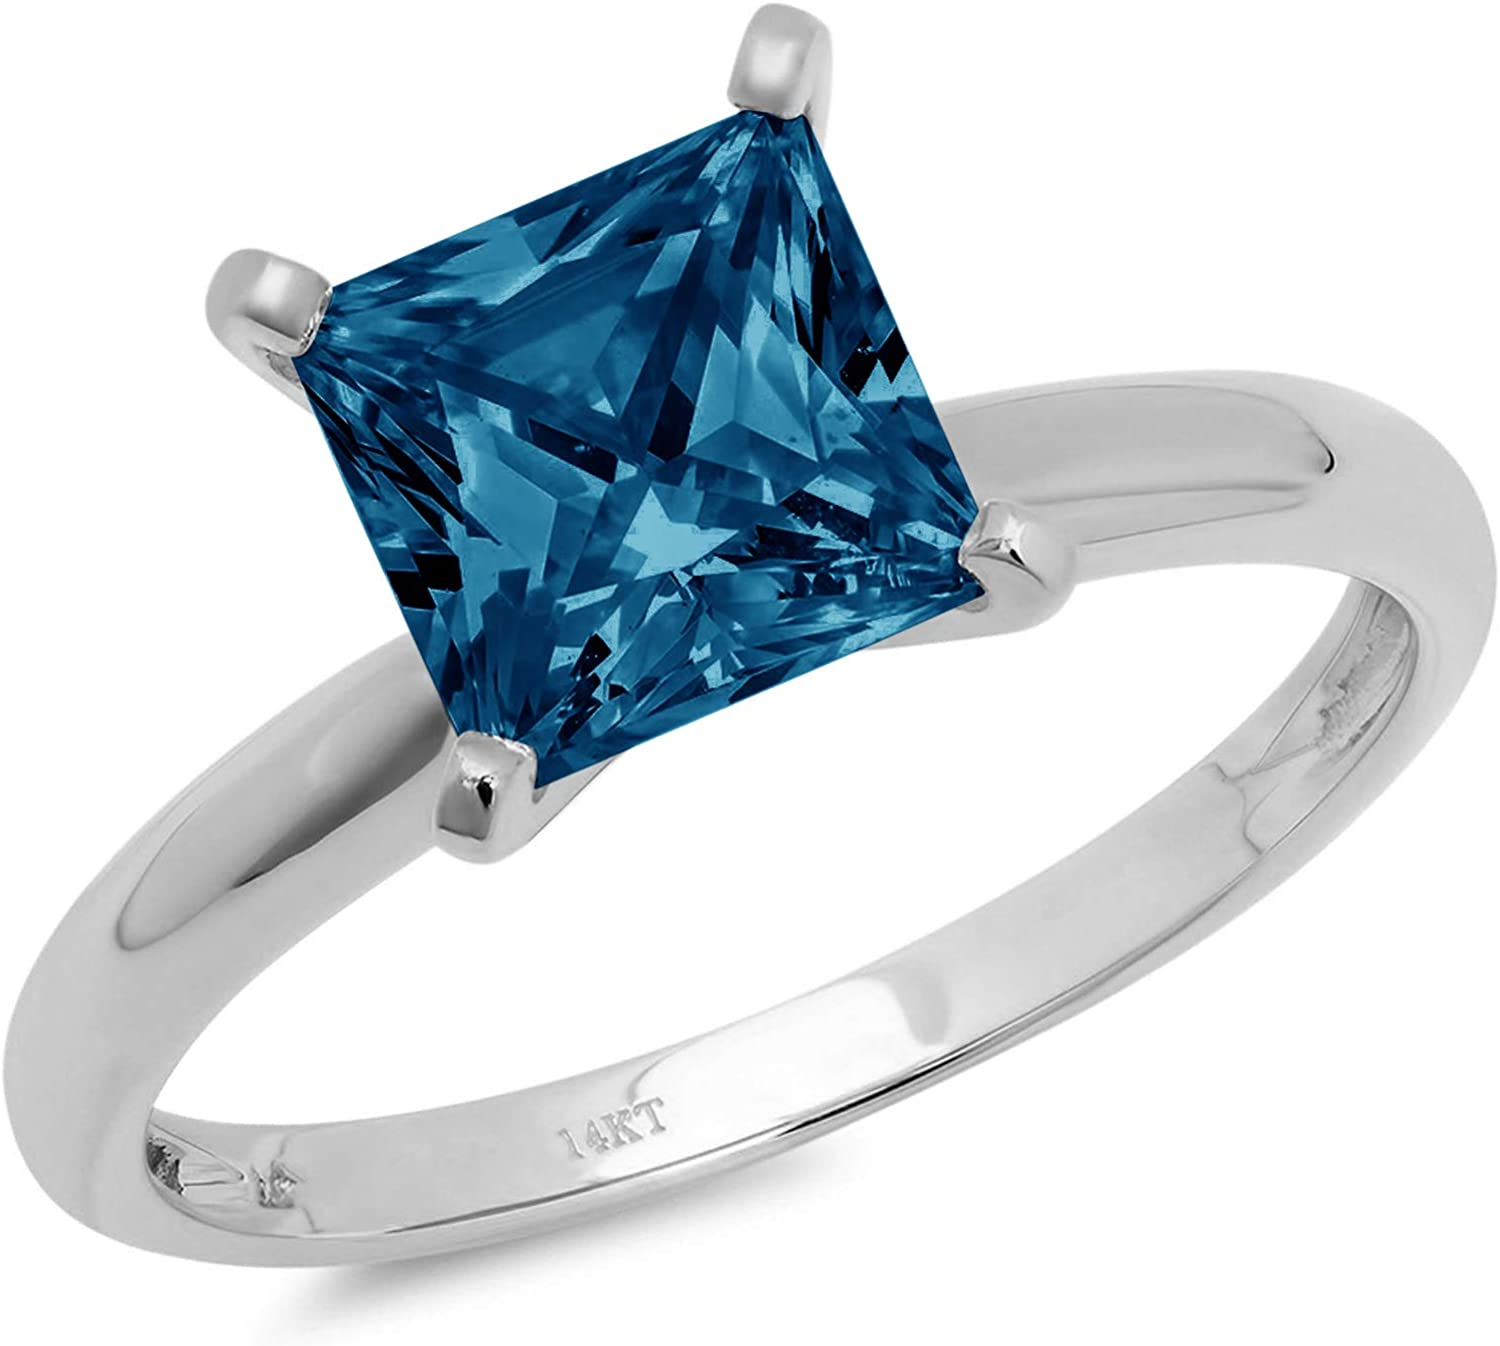 0.95ct Brilliant Princess Cut Solitaire Natural London Blue Ideal VVS1 4-Prong Classic Designer Statement Ring Solid Real 14k White Gold for Women